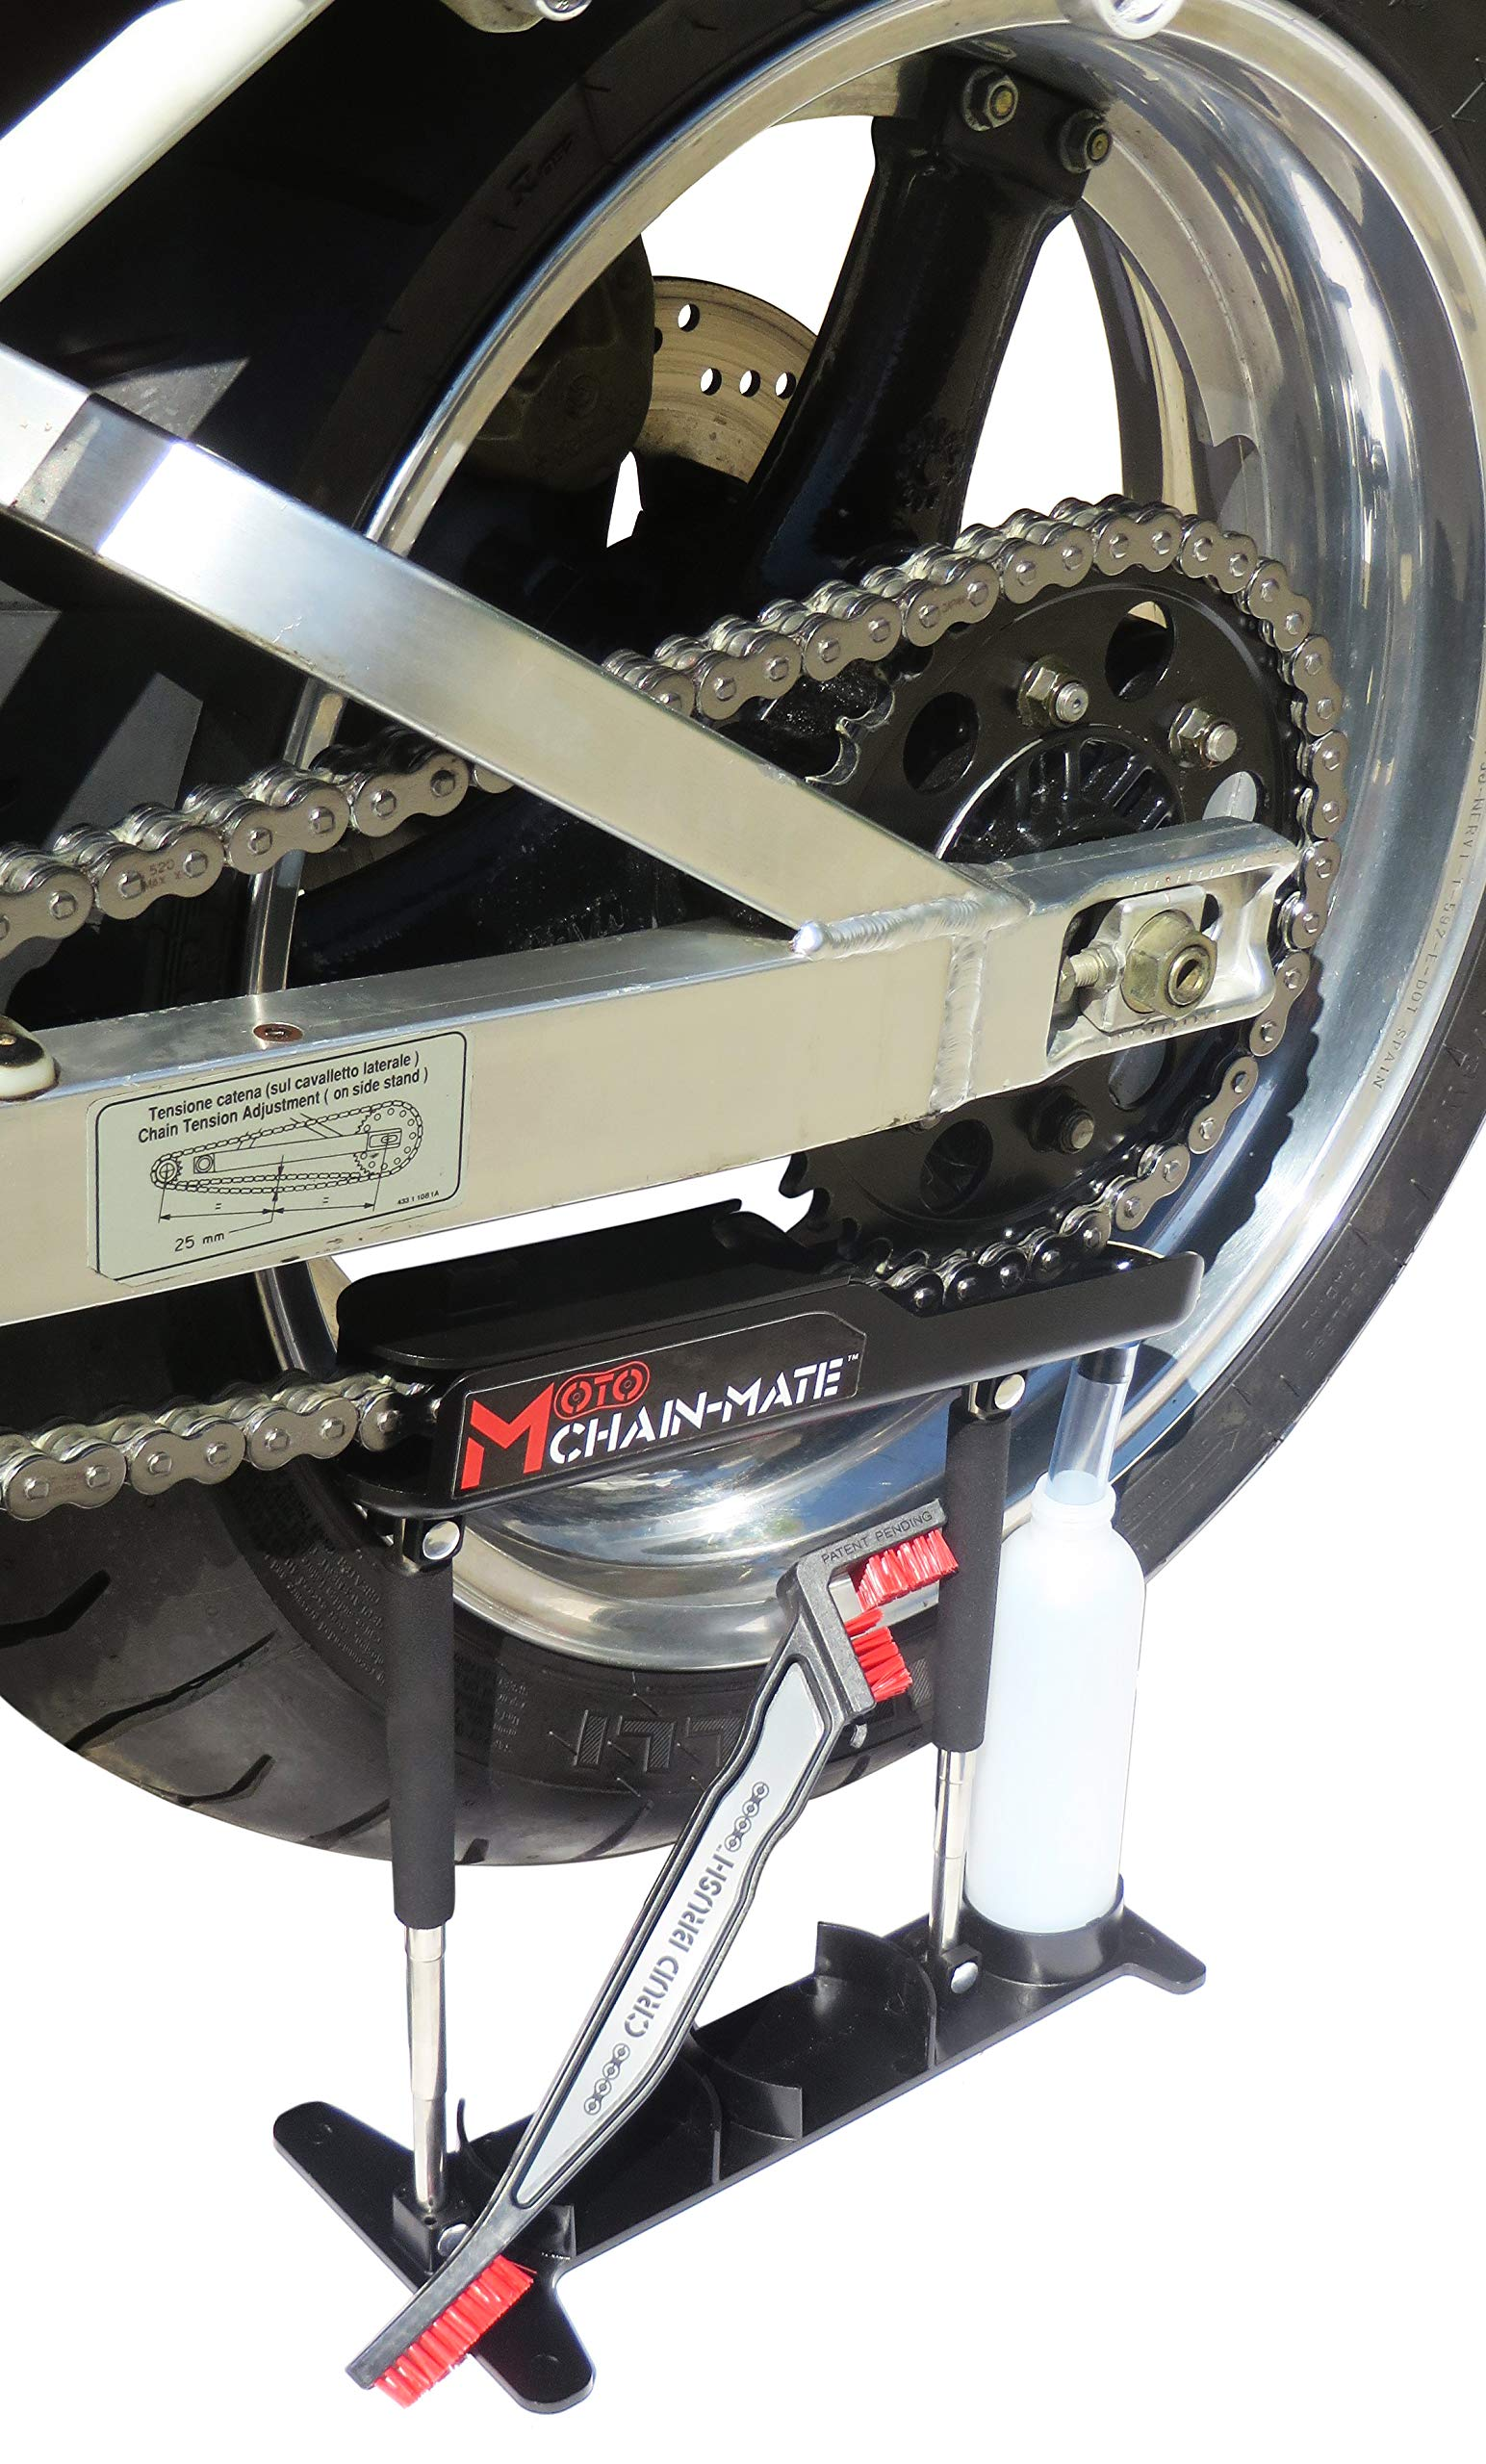 Moto Chain-Mate - The Ultimate Motorcycle Chain Cleaning and Lubrication Kit ! by Gearhead Zone